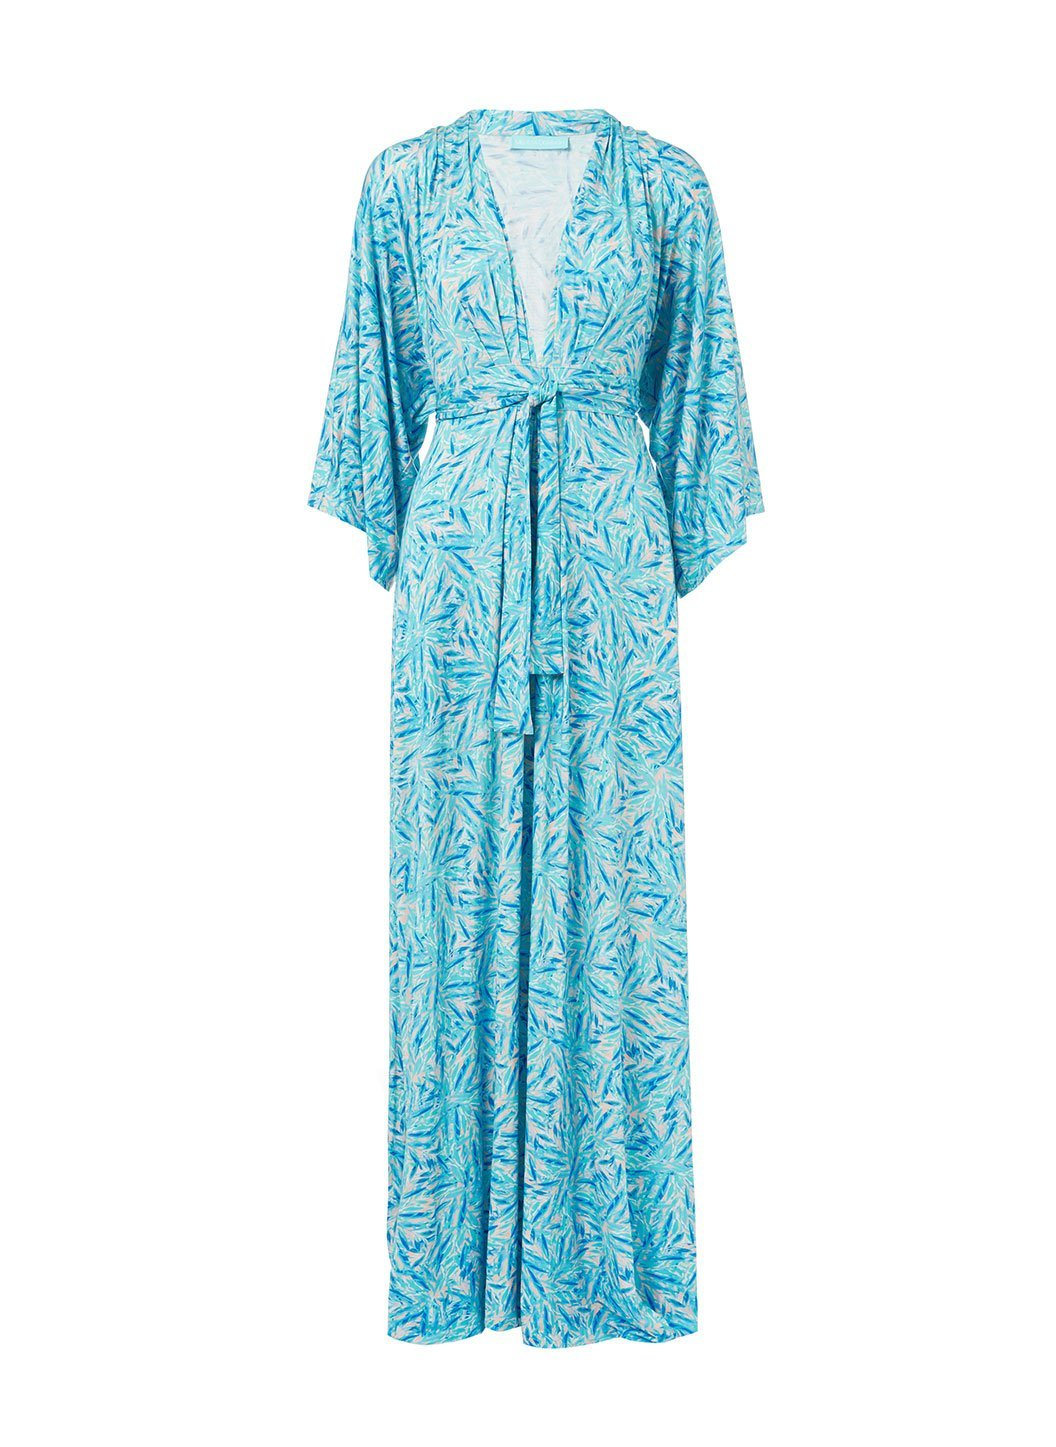 annaelle blue leaf longsleeve belted maxi dress 2019